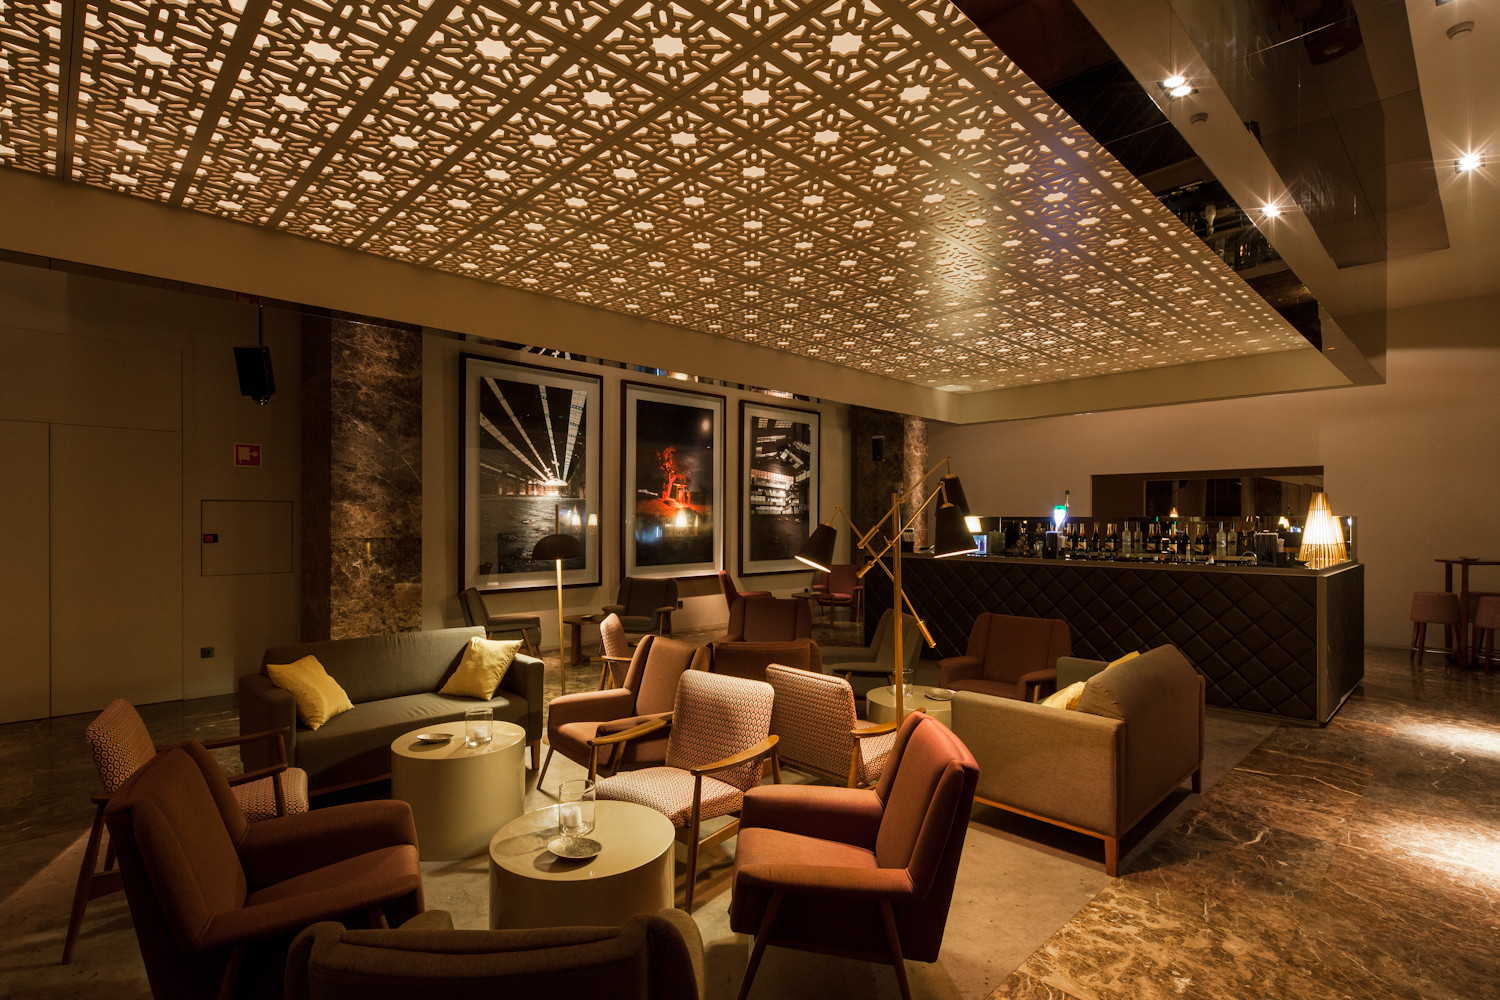 Gallery of bozen bar central arquitectos 15 for Designhotel bozen